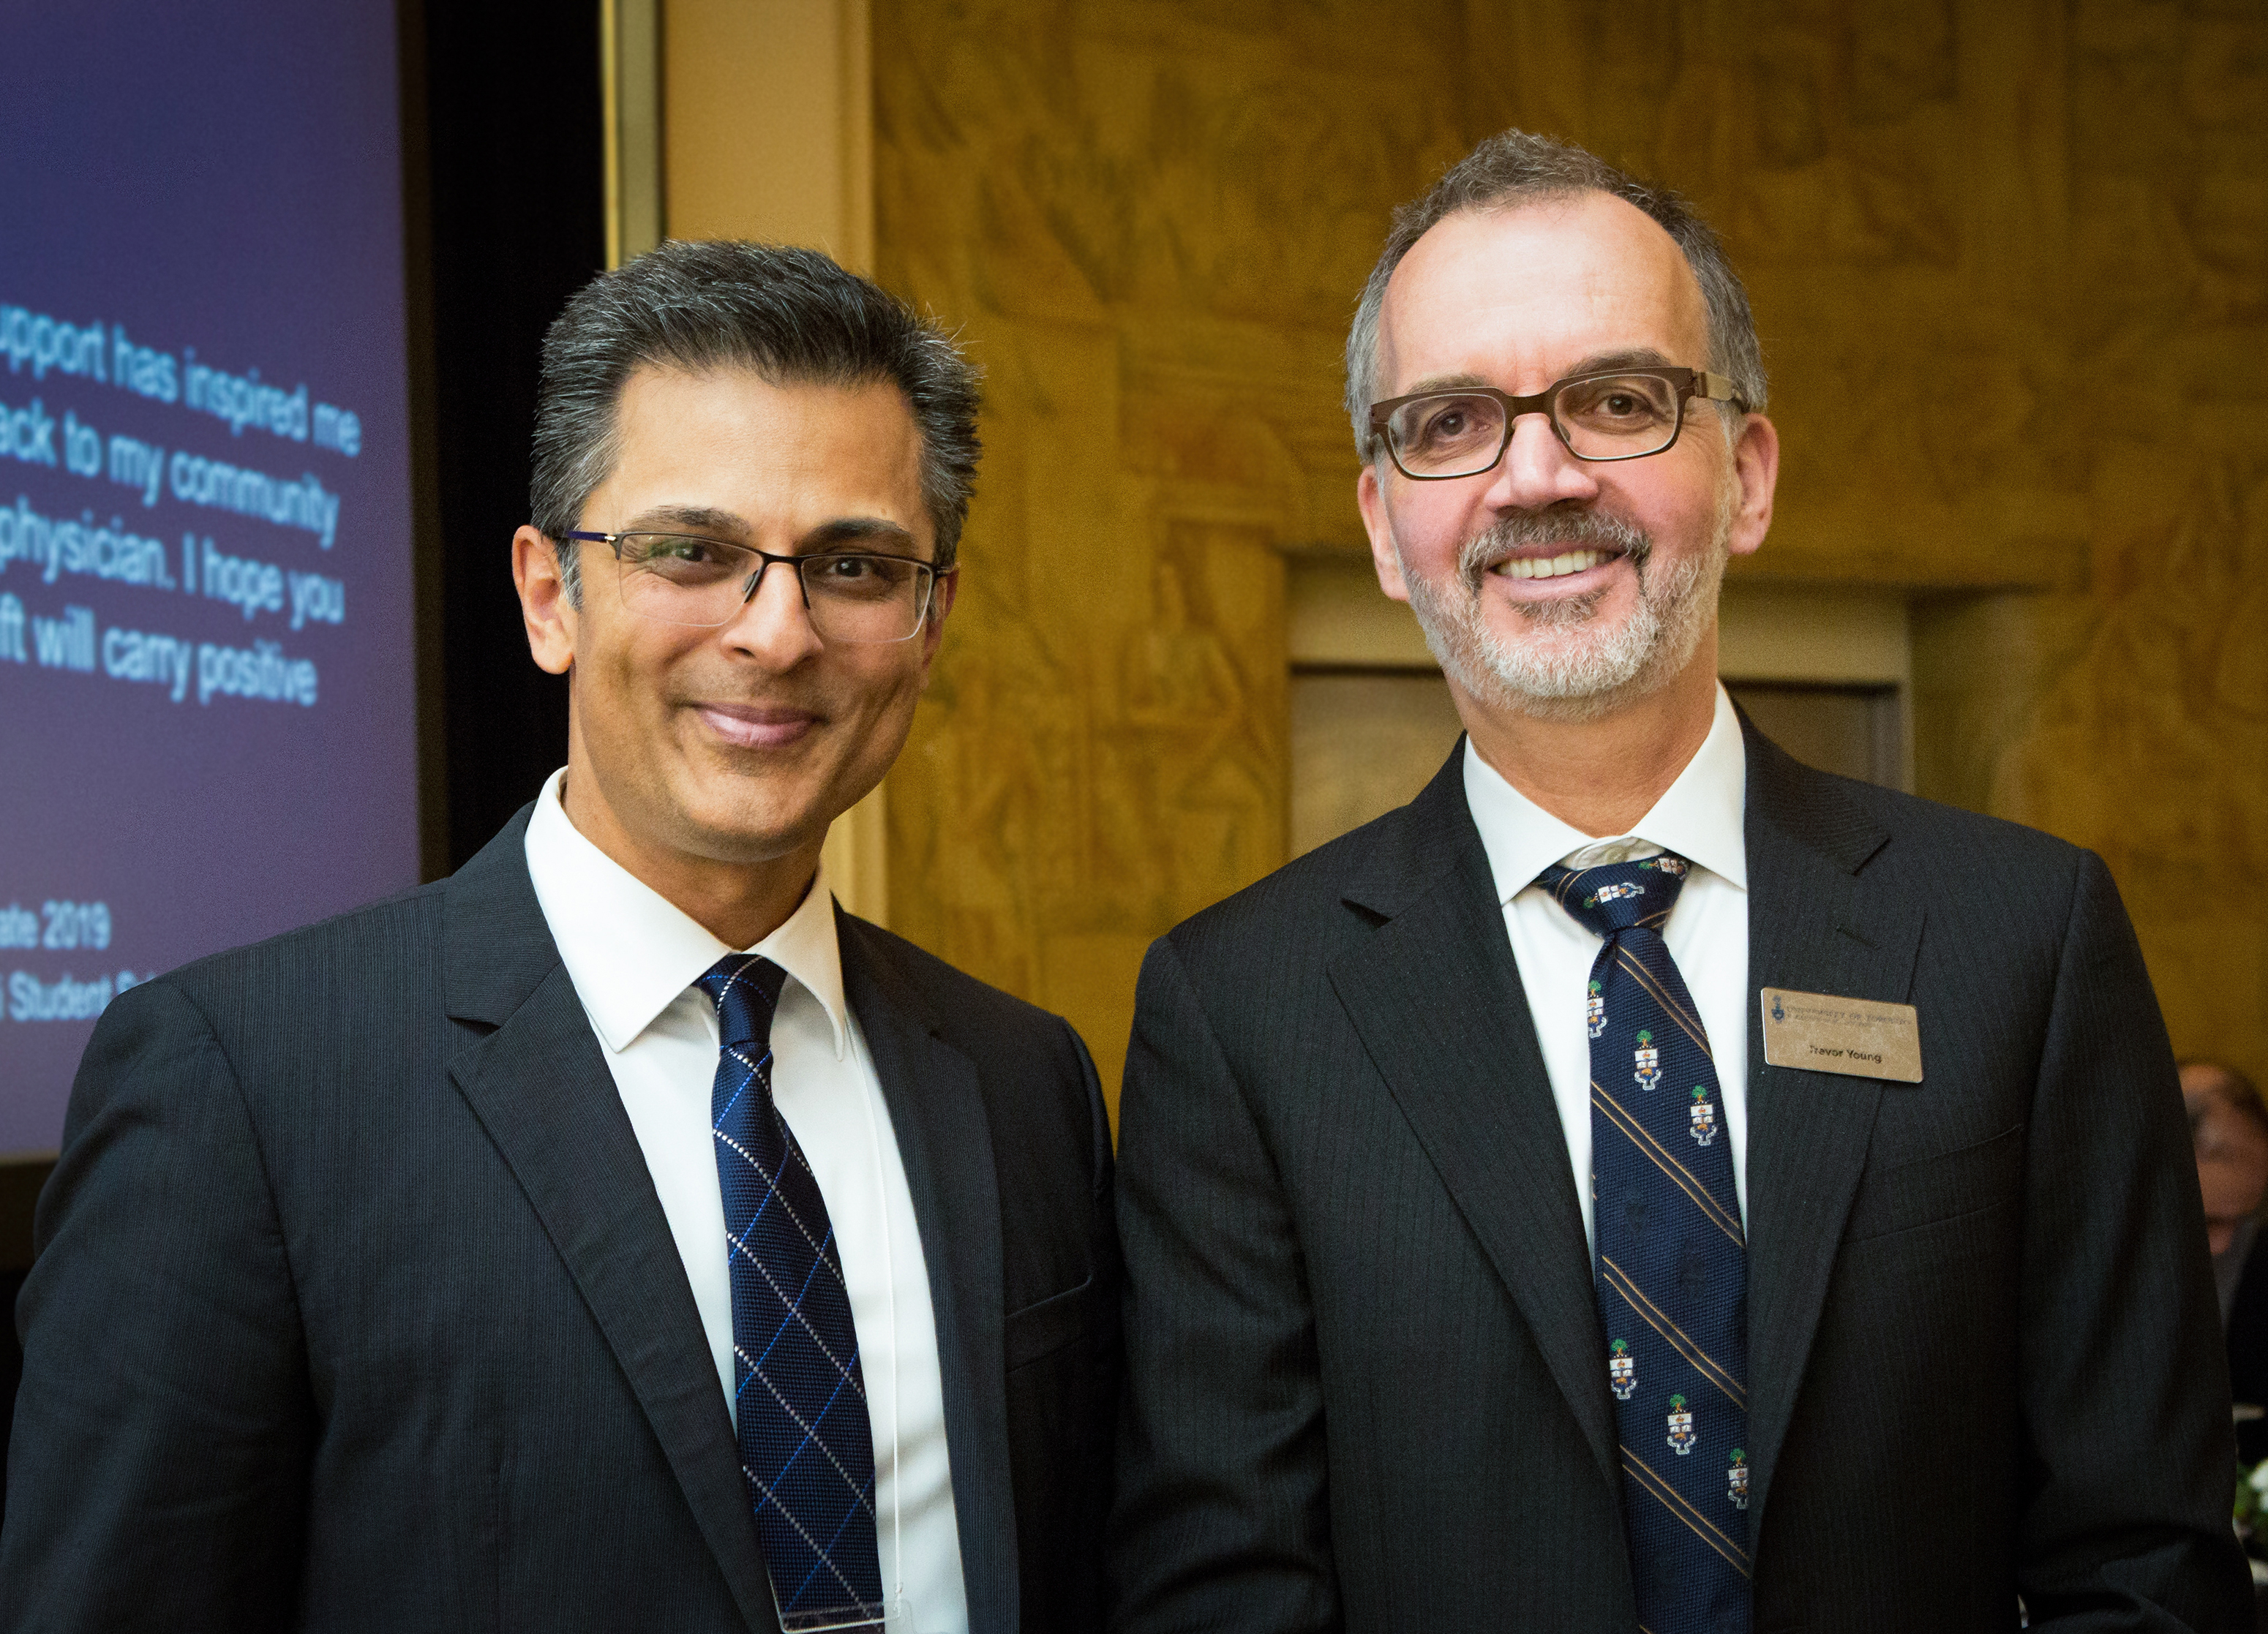 Dr. Muhammad Mamdani and Dean Trevor Young